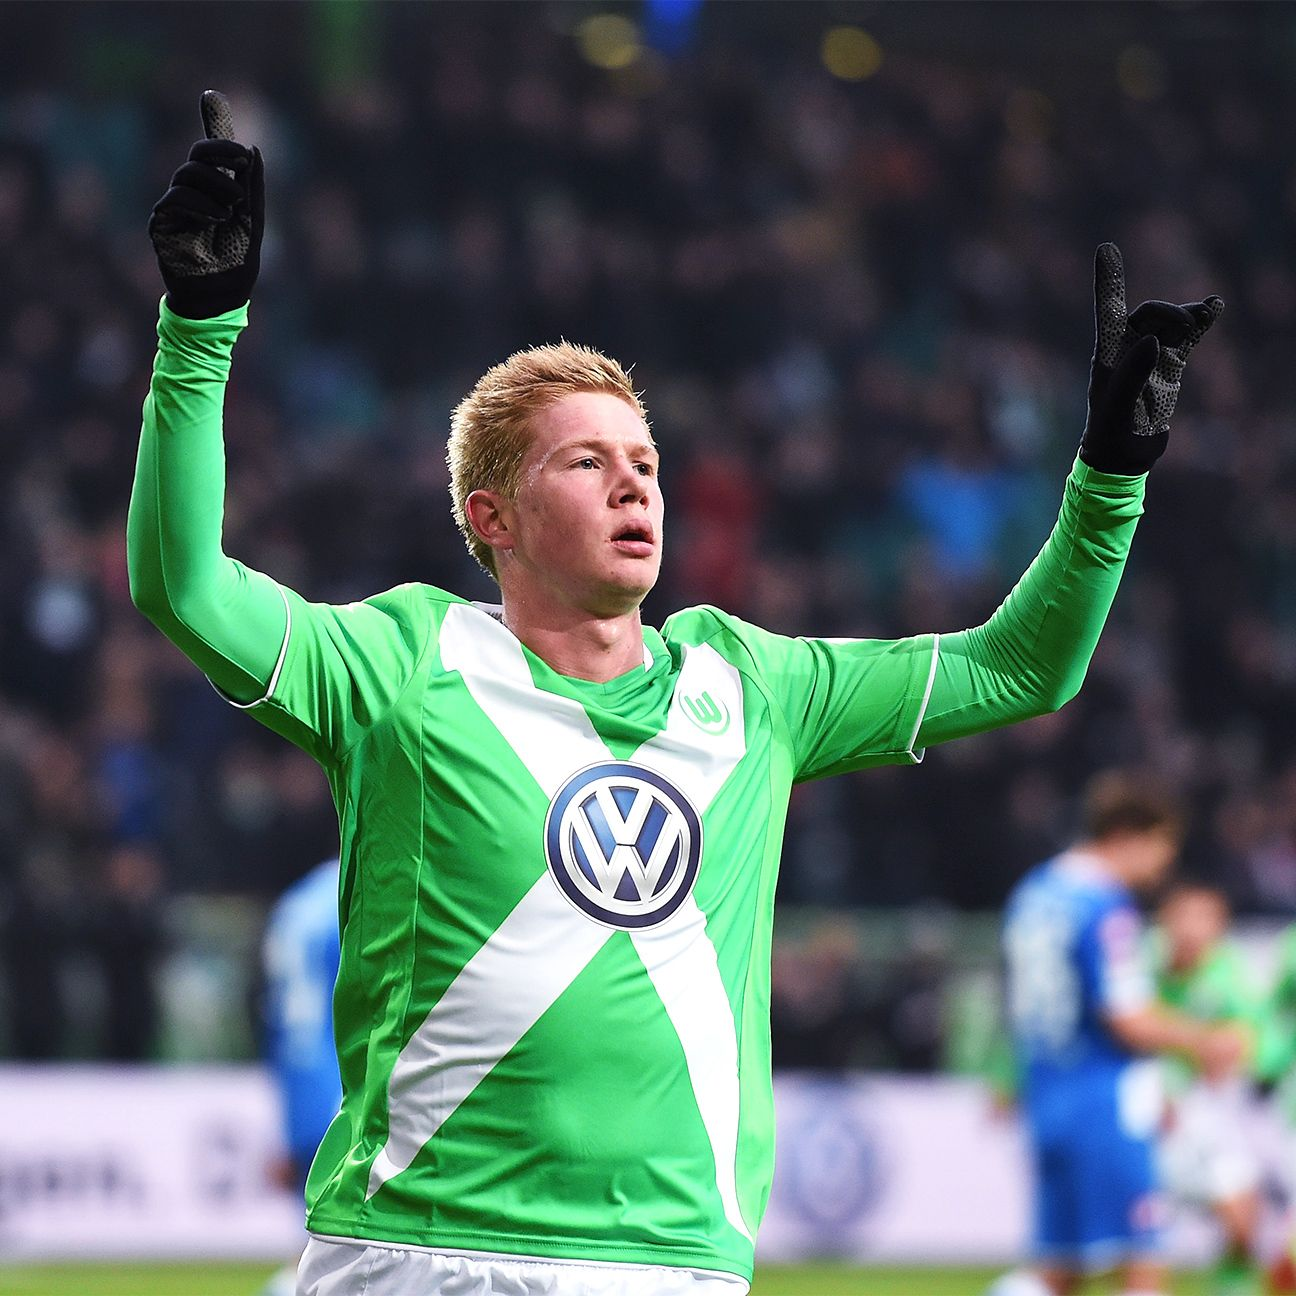 Kevin De Bruyne of Wolfsburg leads the Bundesliga with 93 total chances created.